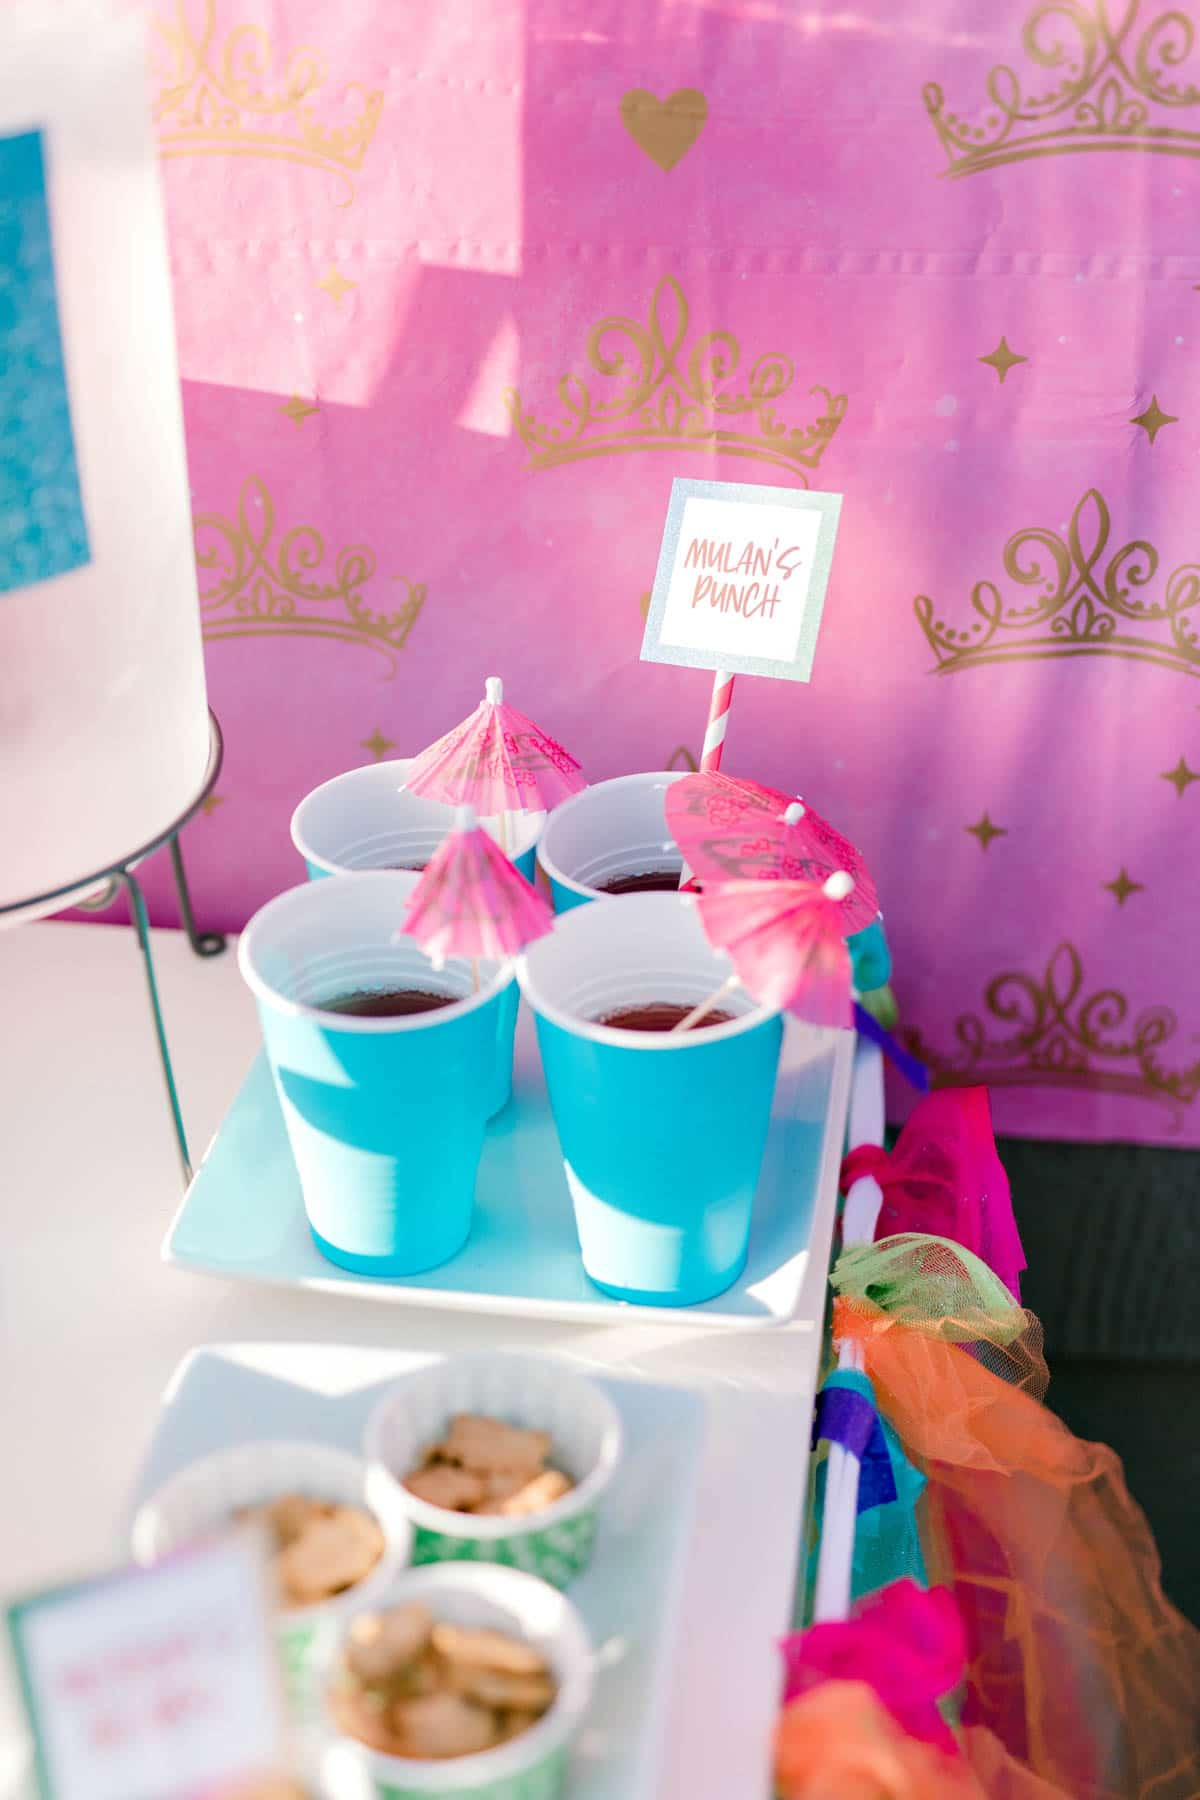 blue cups with pink parasols